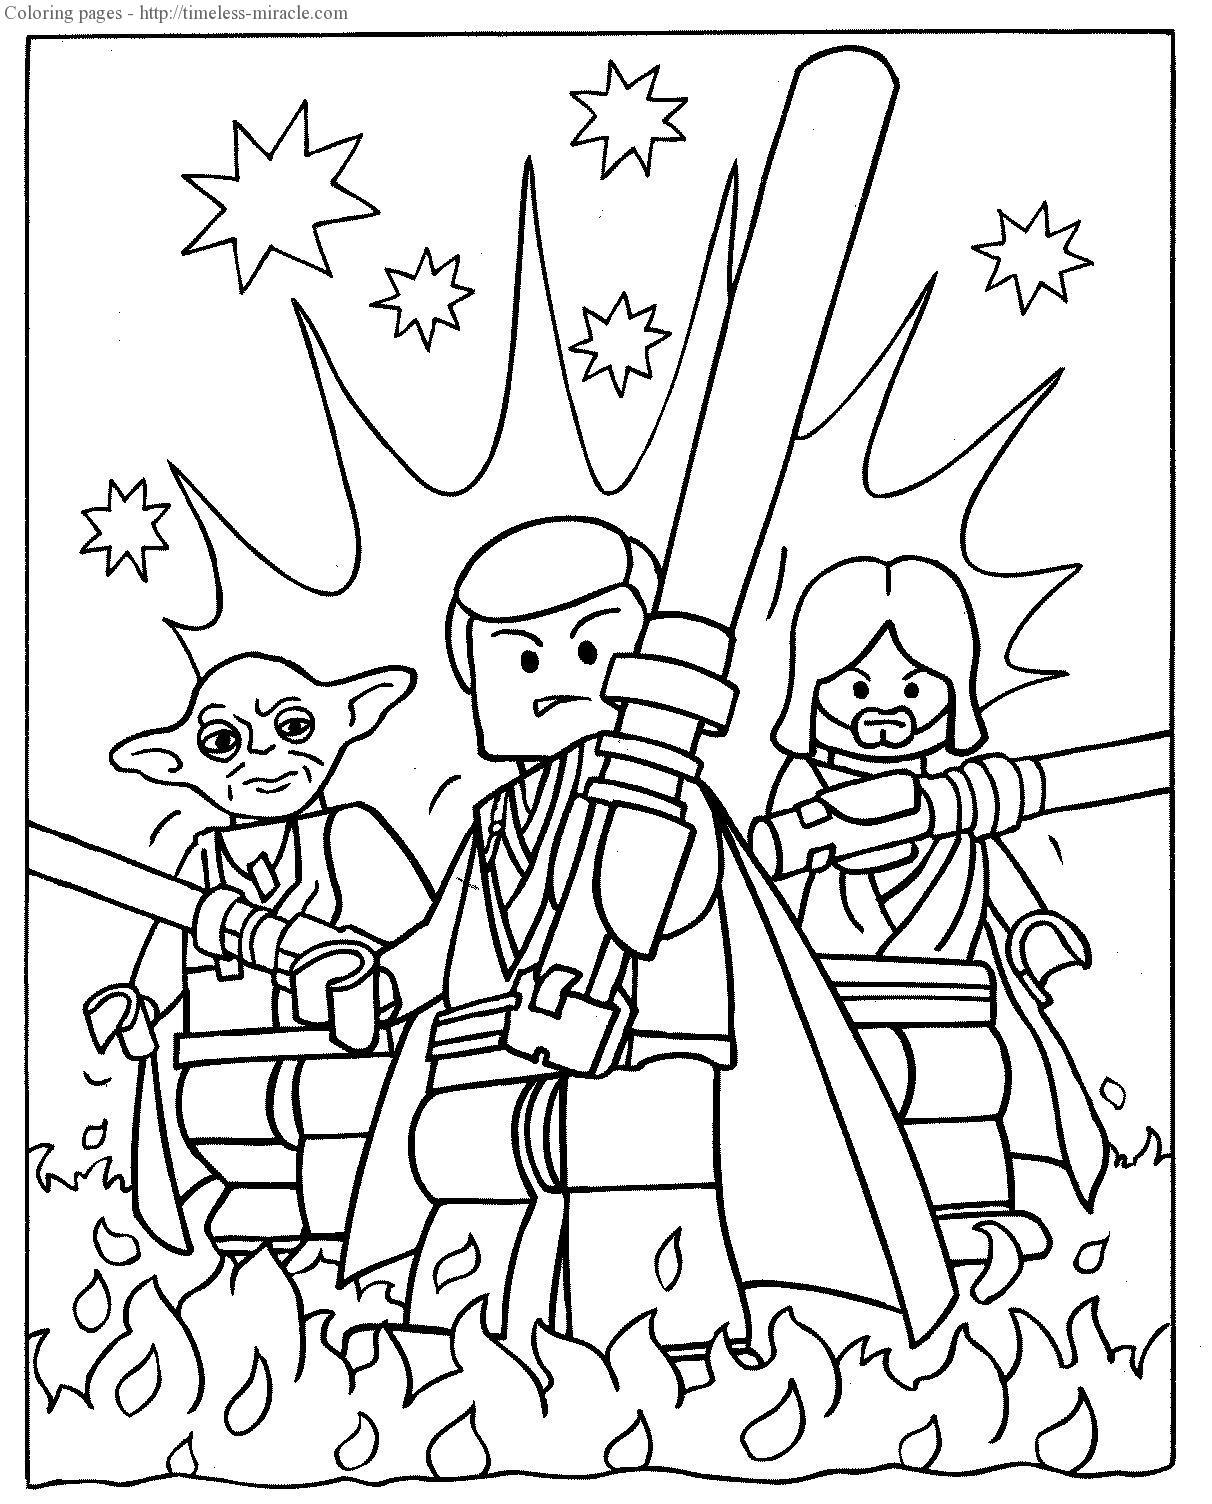 free lego star wars coloring pages lego star wars coloring pages free timeless miraclecom star wars pages lego coloring free